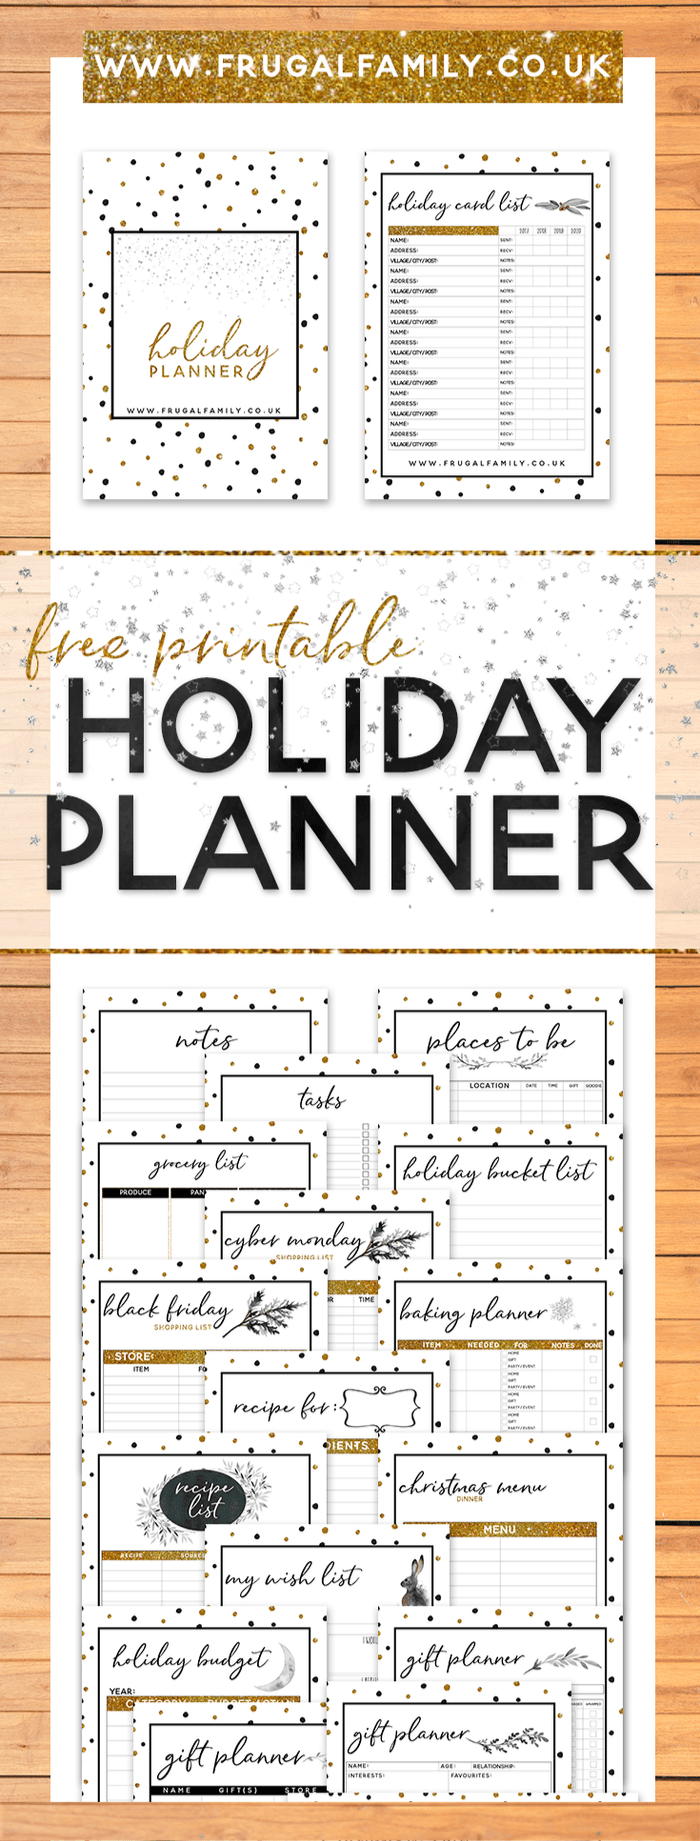 Amazing Christmas Planner - Free Printable!